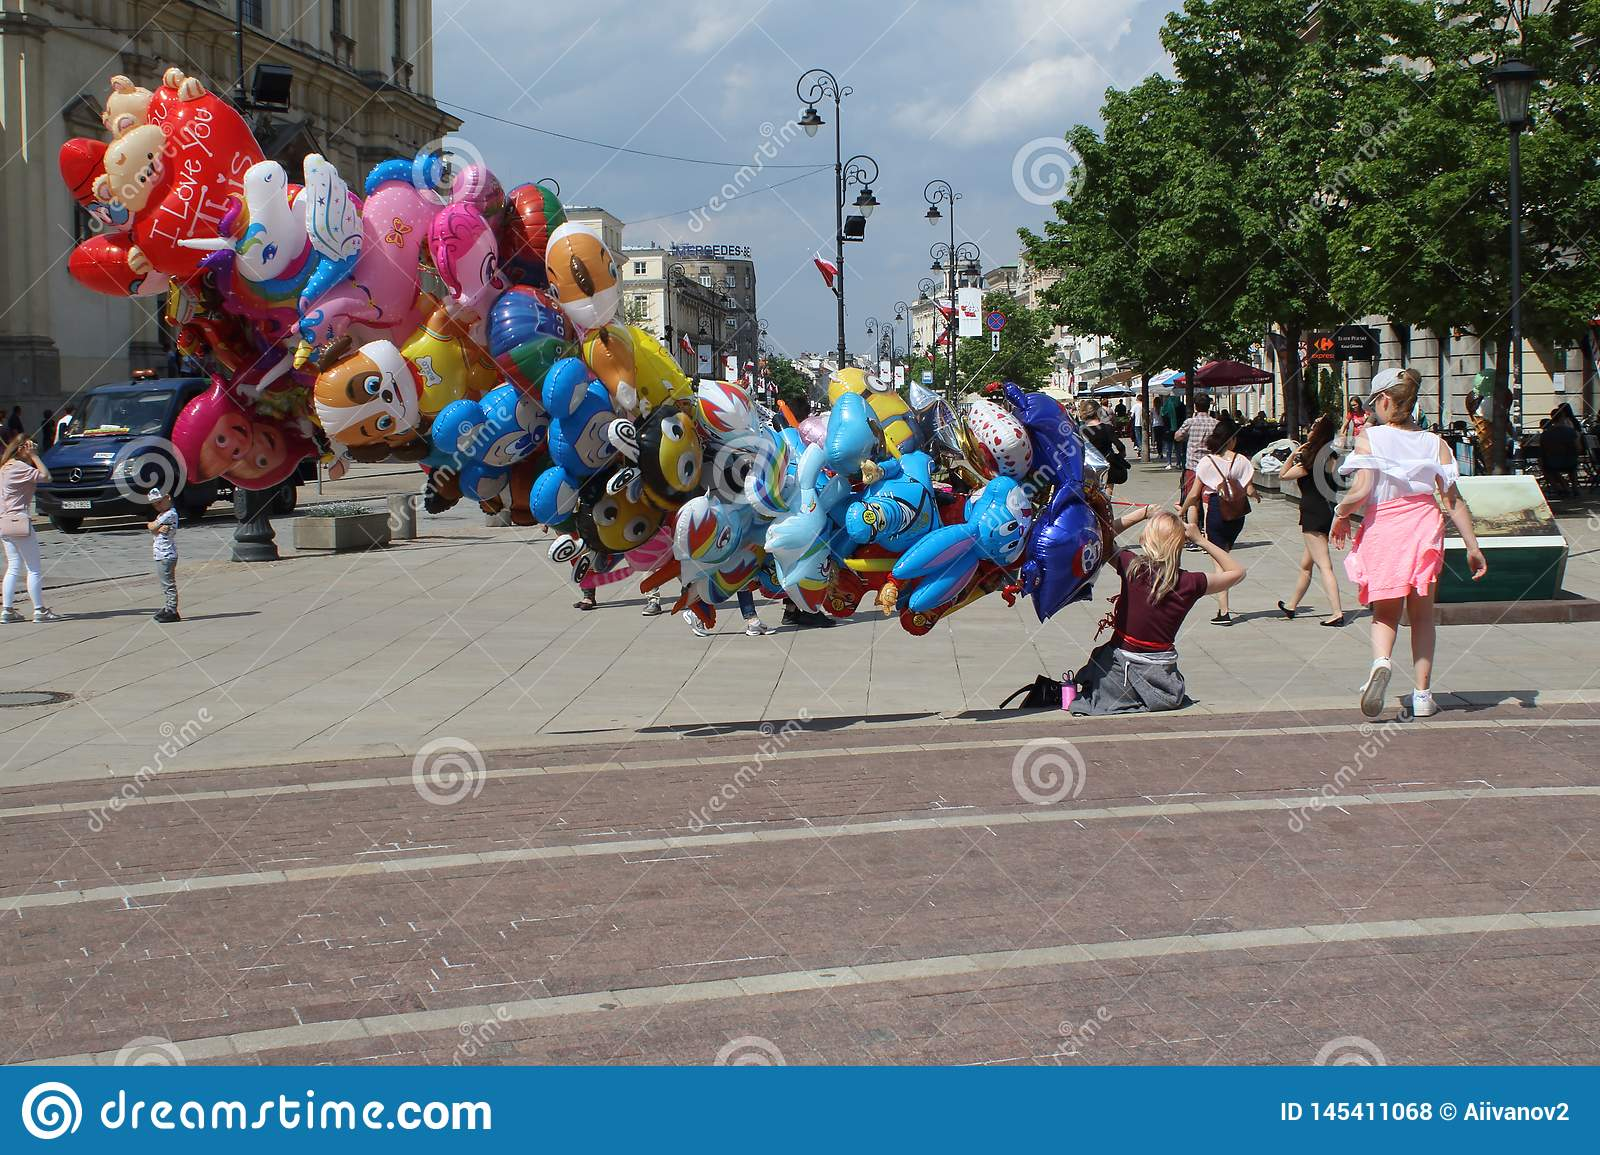 Warsaw, Poland - MAY 1, 2018: Colorful funny street Scene with ballons